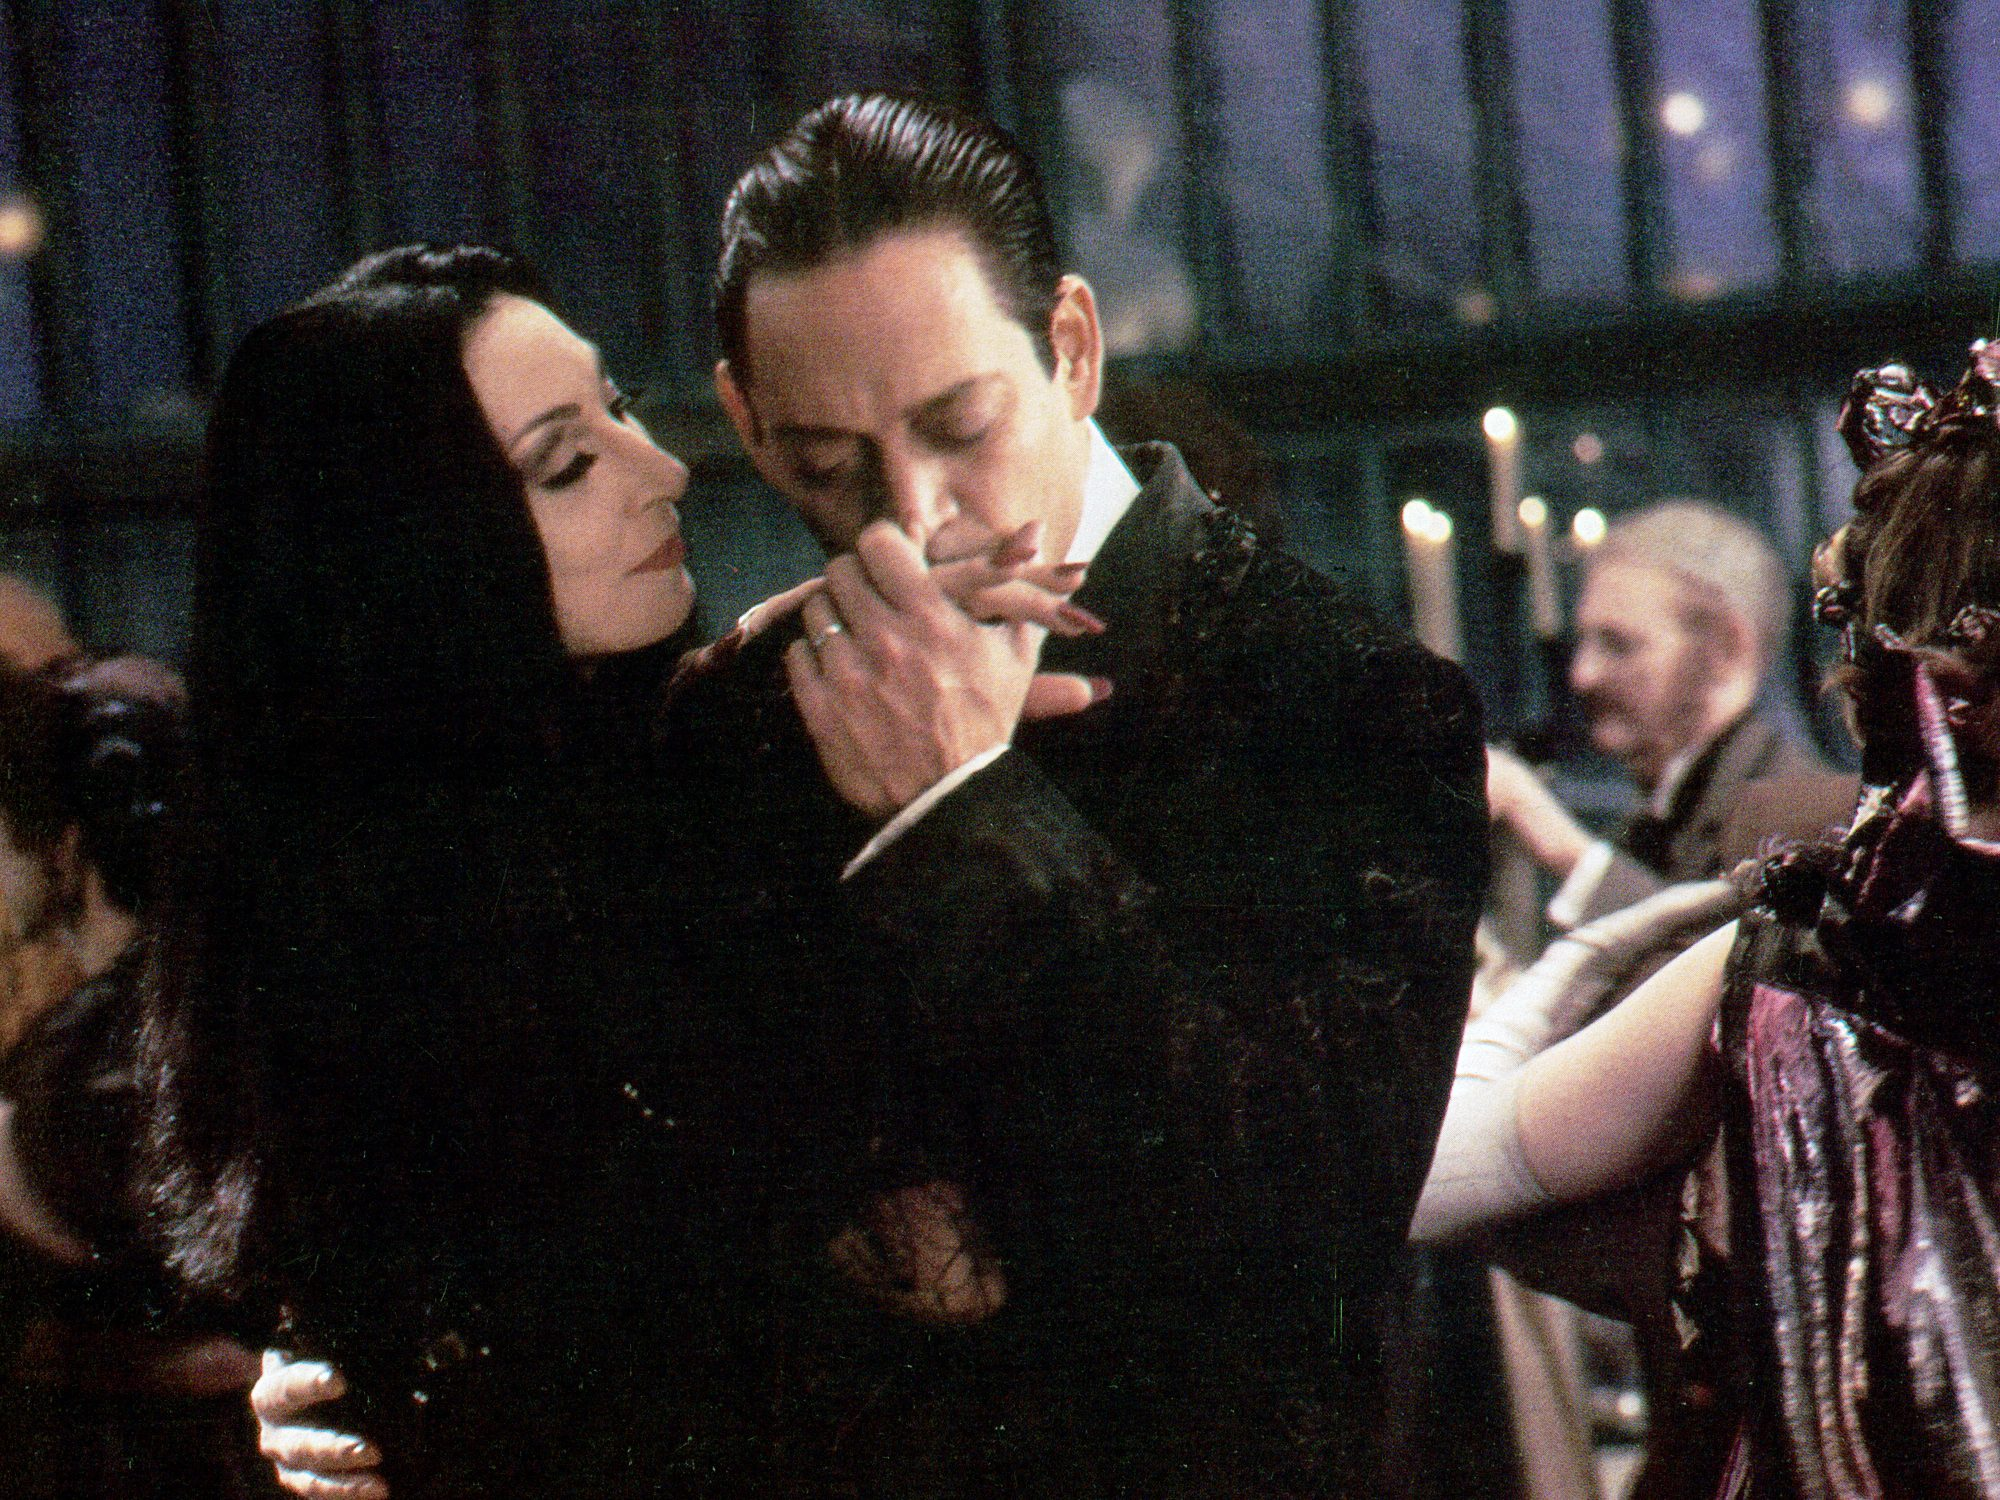 <p><em>The Addams Family</em> (1991)</p>